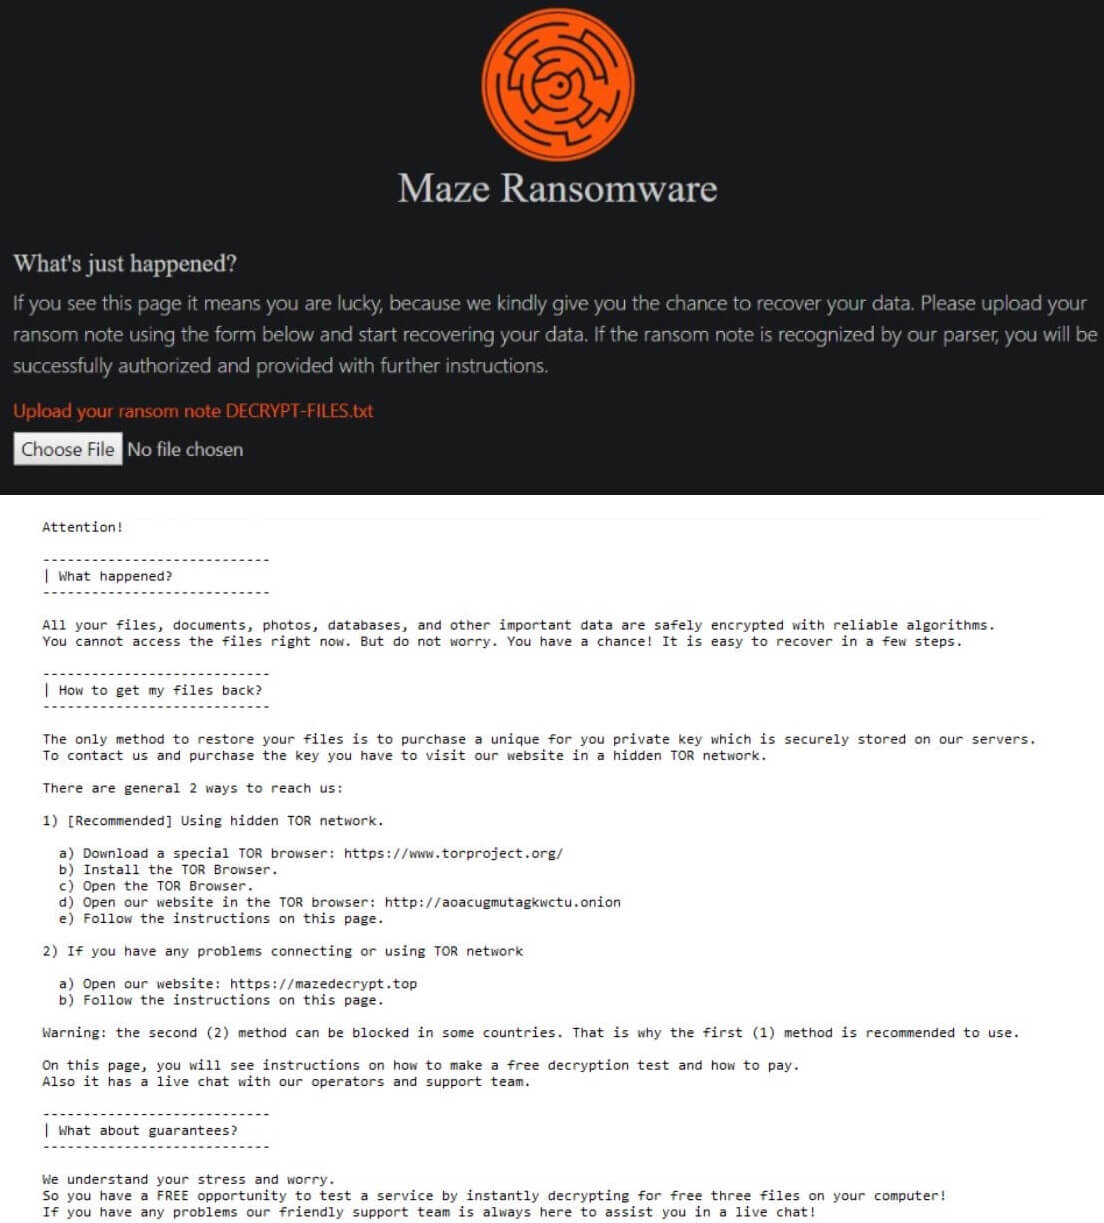 stf-maze-ransomware-2019-payment-instructions-ransom-note